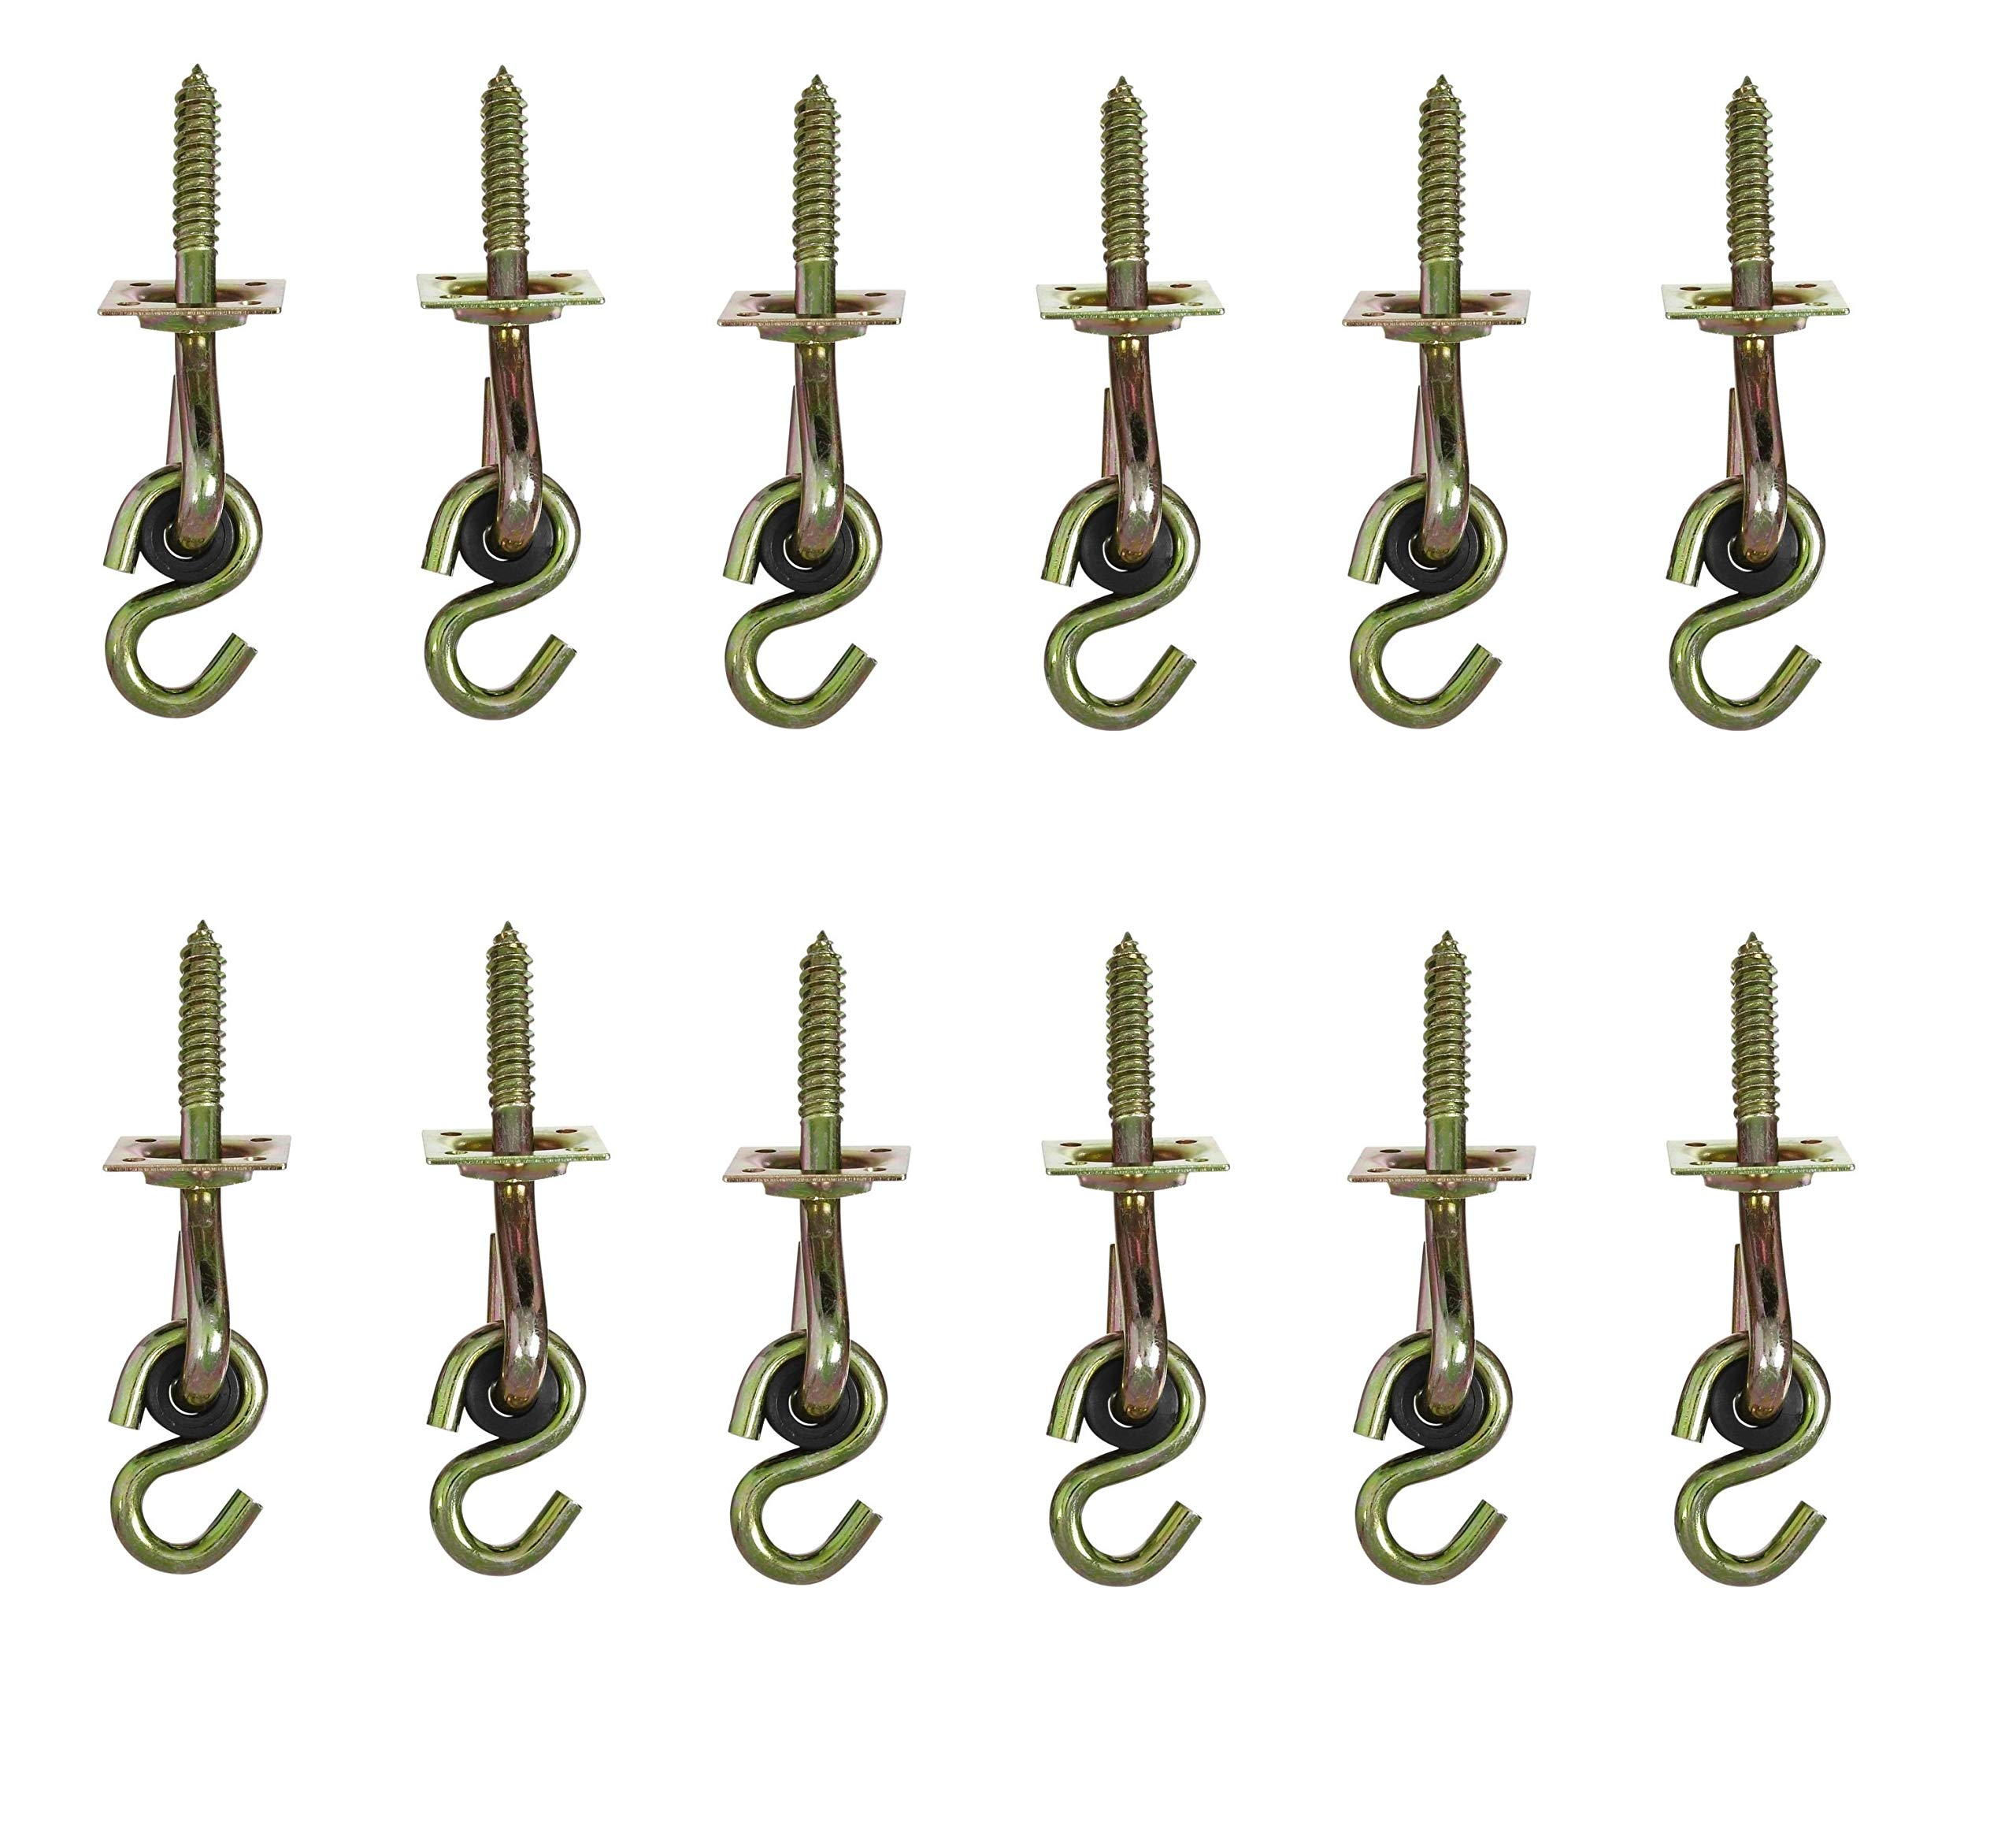 National Hardware N264-069 V2038 Swing Hook Kits in Yellow Chromate, 2 Hooks per Pack, Sold as 6 Pack, 12 Hooks Total